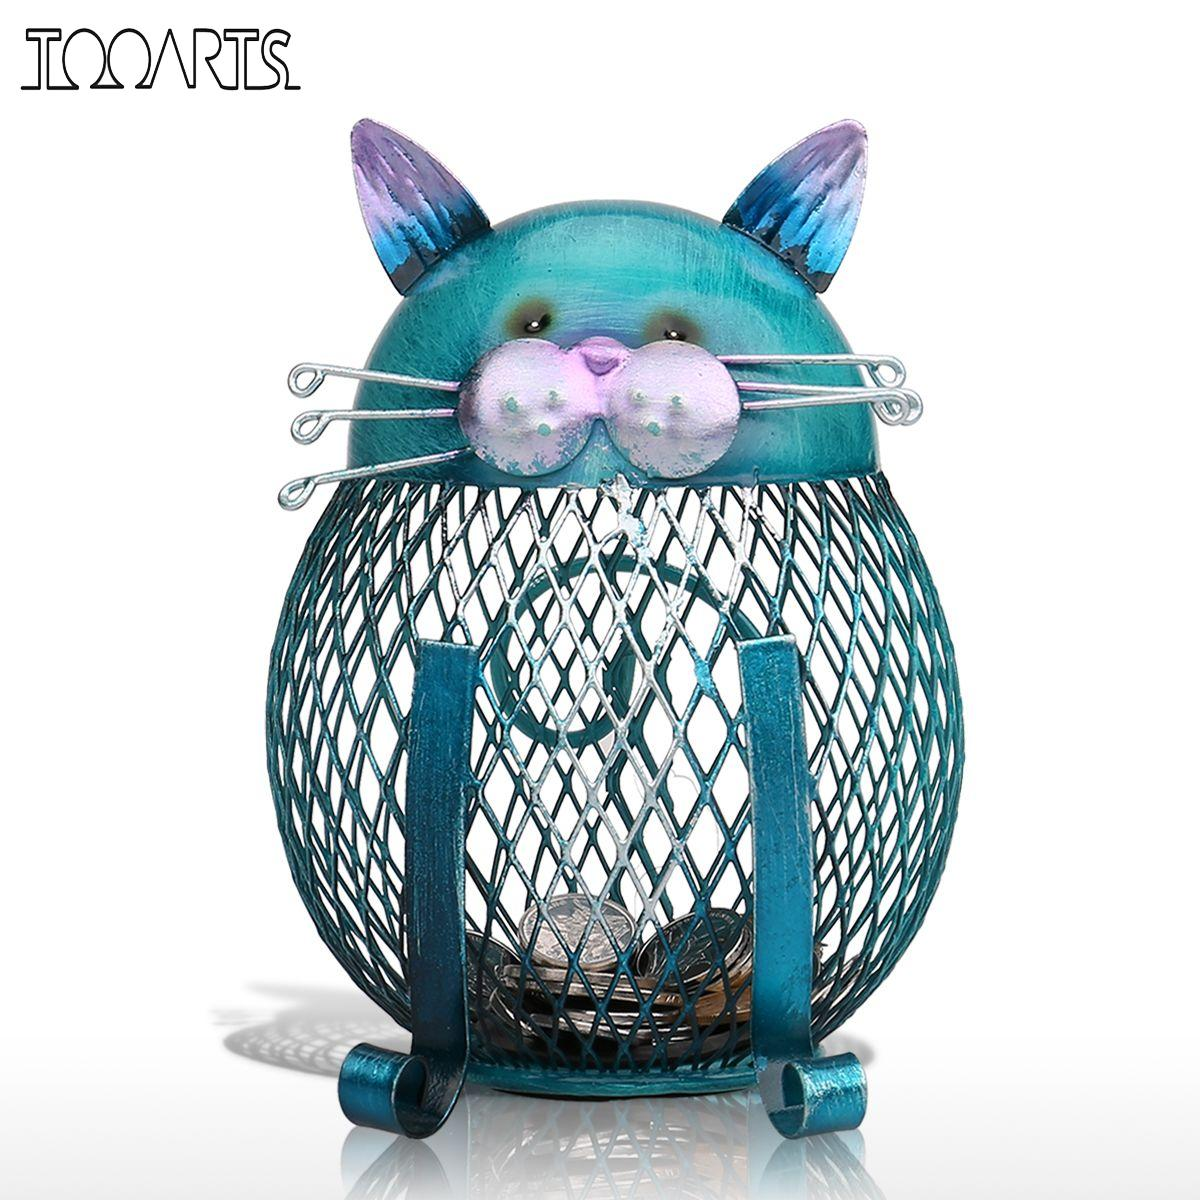 Tooarts Blue Cat Bank Shaped Piggy Bank Metal Coin Bank Money Box Figurines Saving Money Home Decor Favor Gift For Kids(China (Mainland))